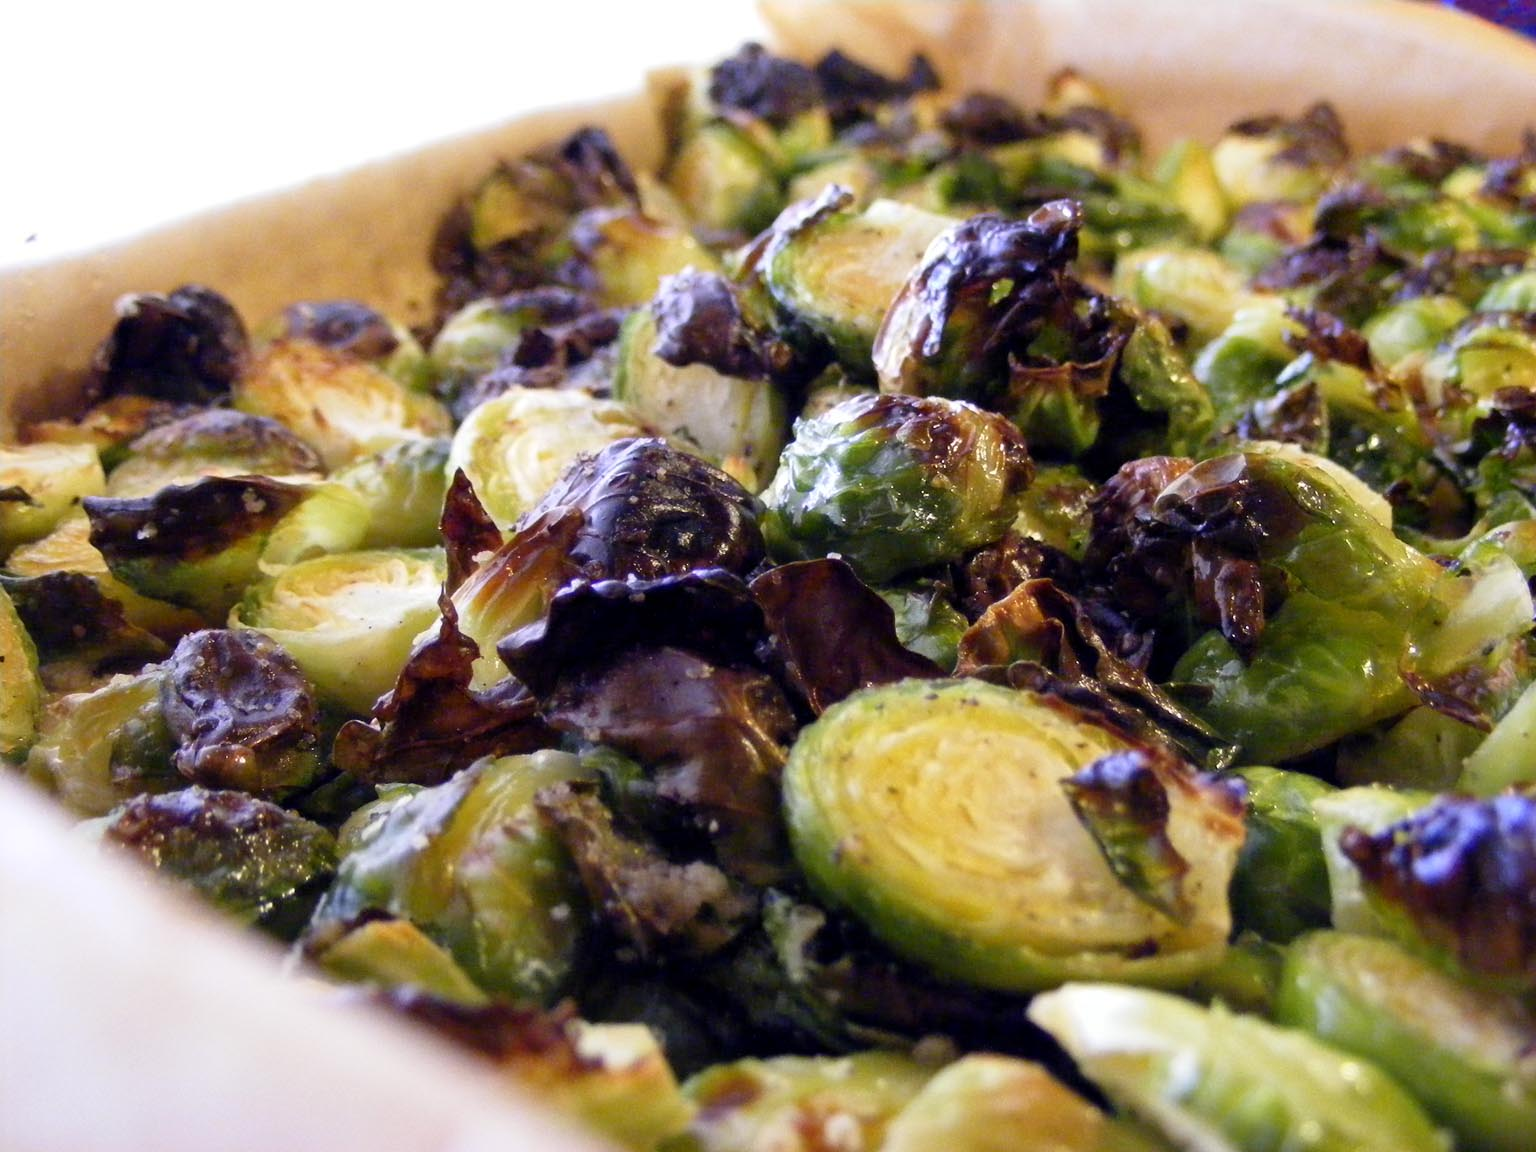 Brussels sprouts with white truffle oil